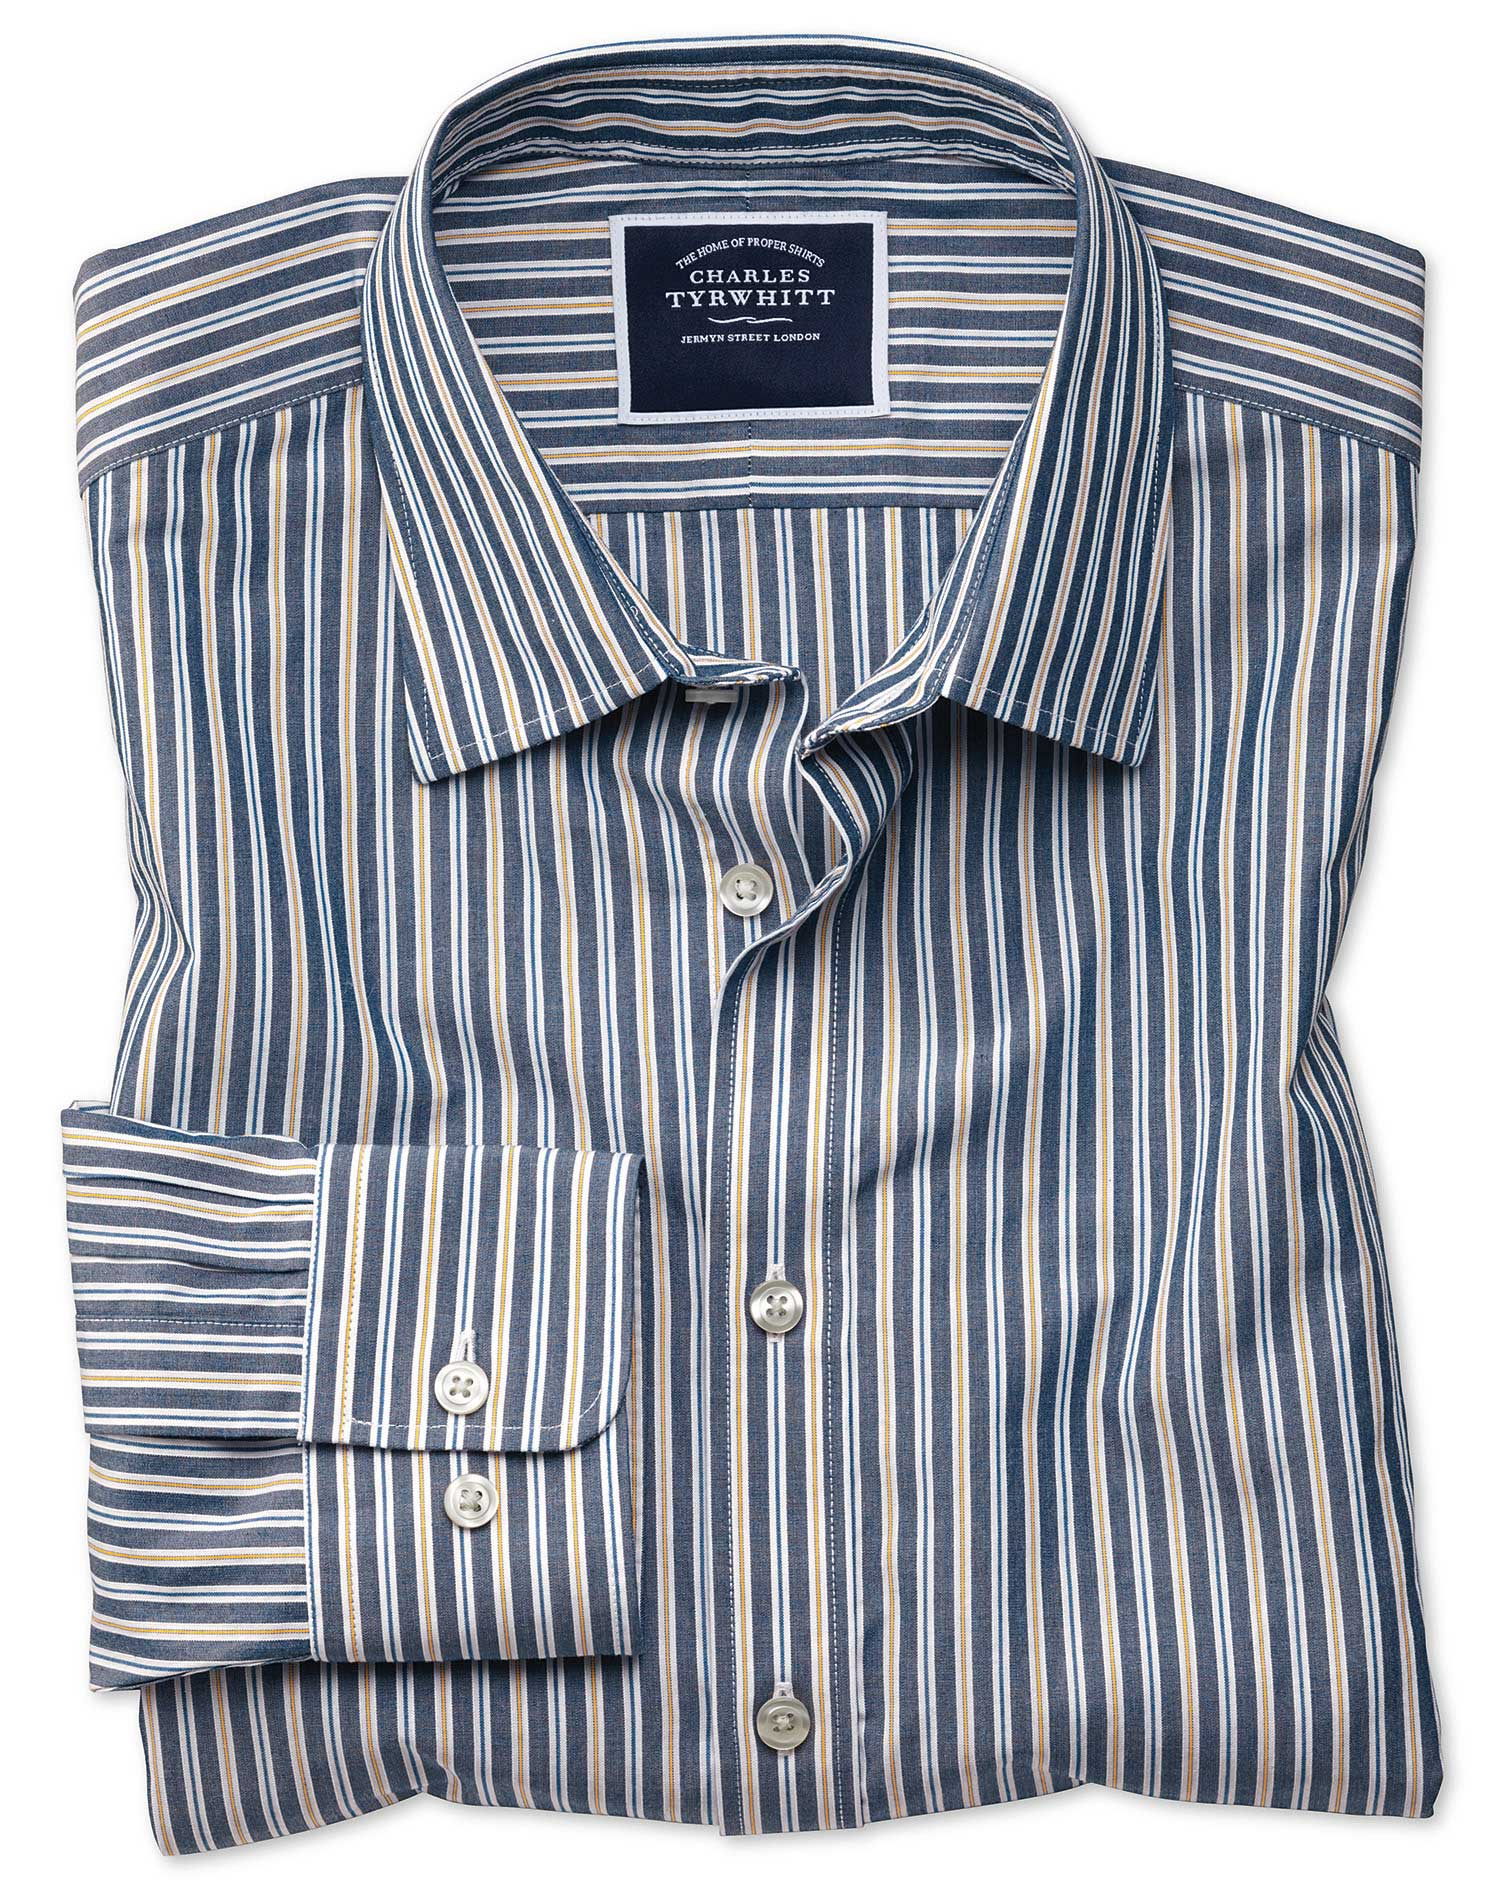 Classic Fit Navy Multi Stripe Soft Washed Cotton Shirt Single Cuff Size XL by Charles Tyrwhitt